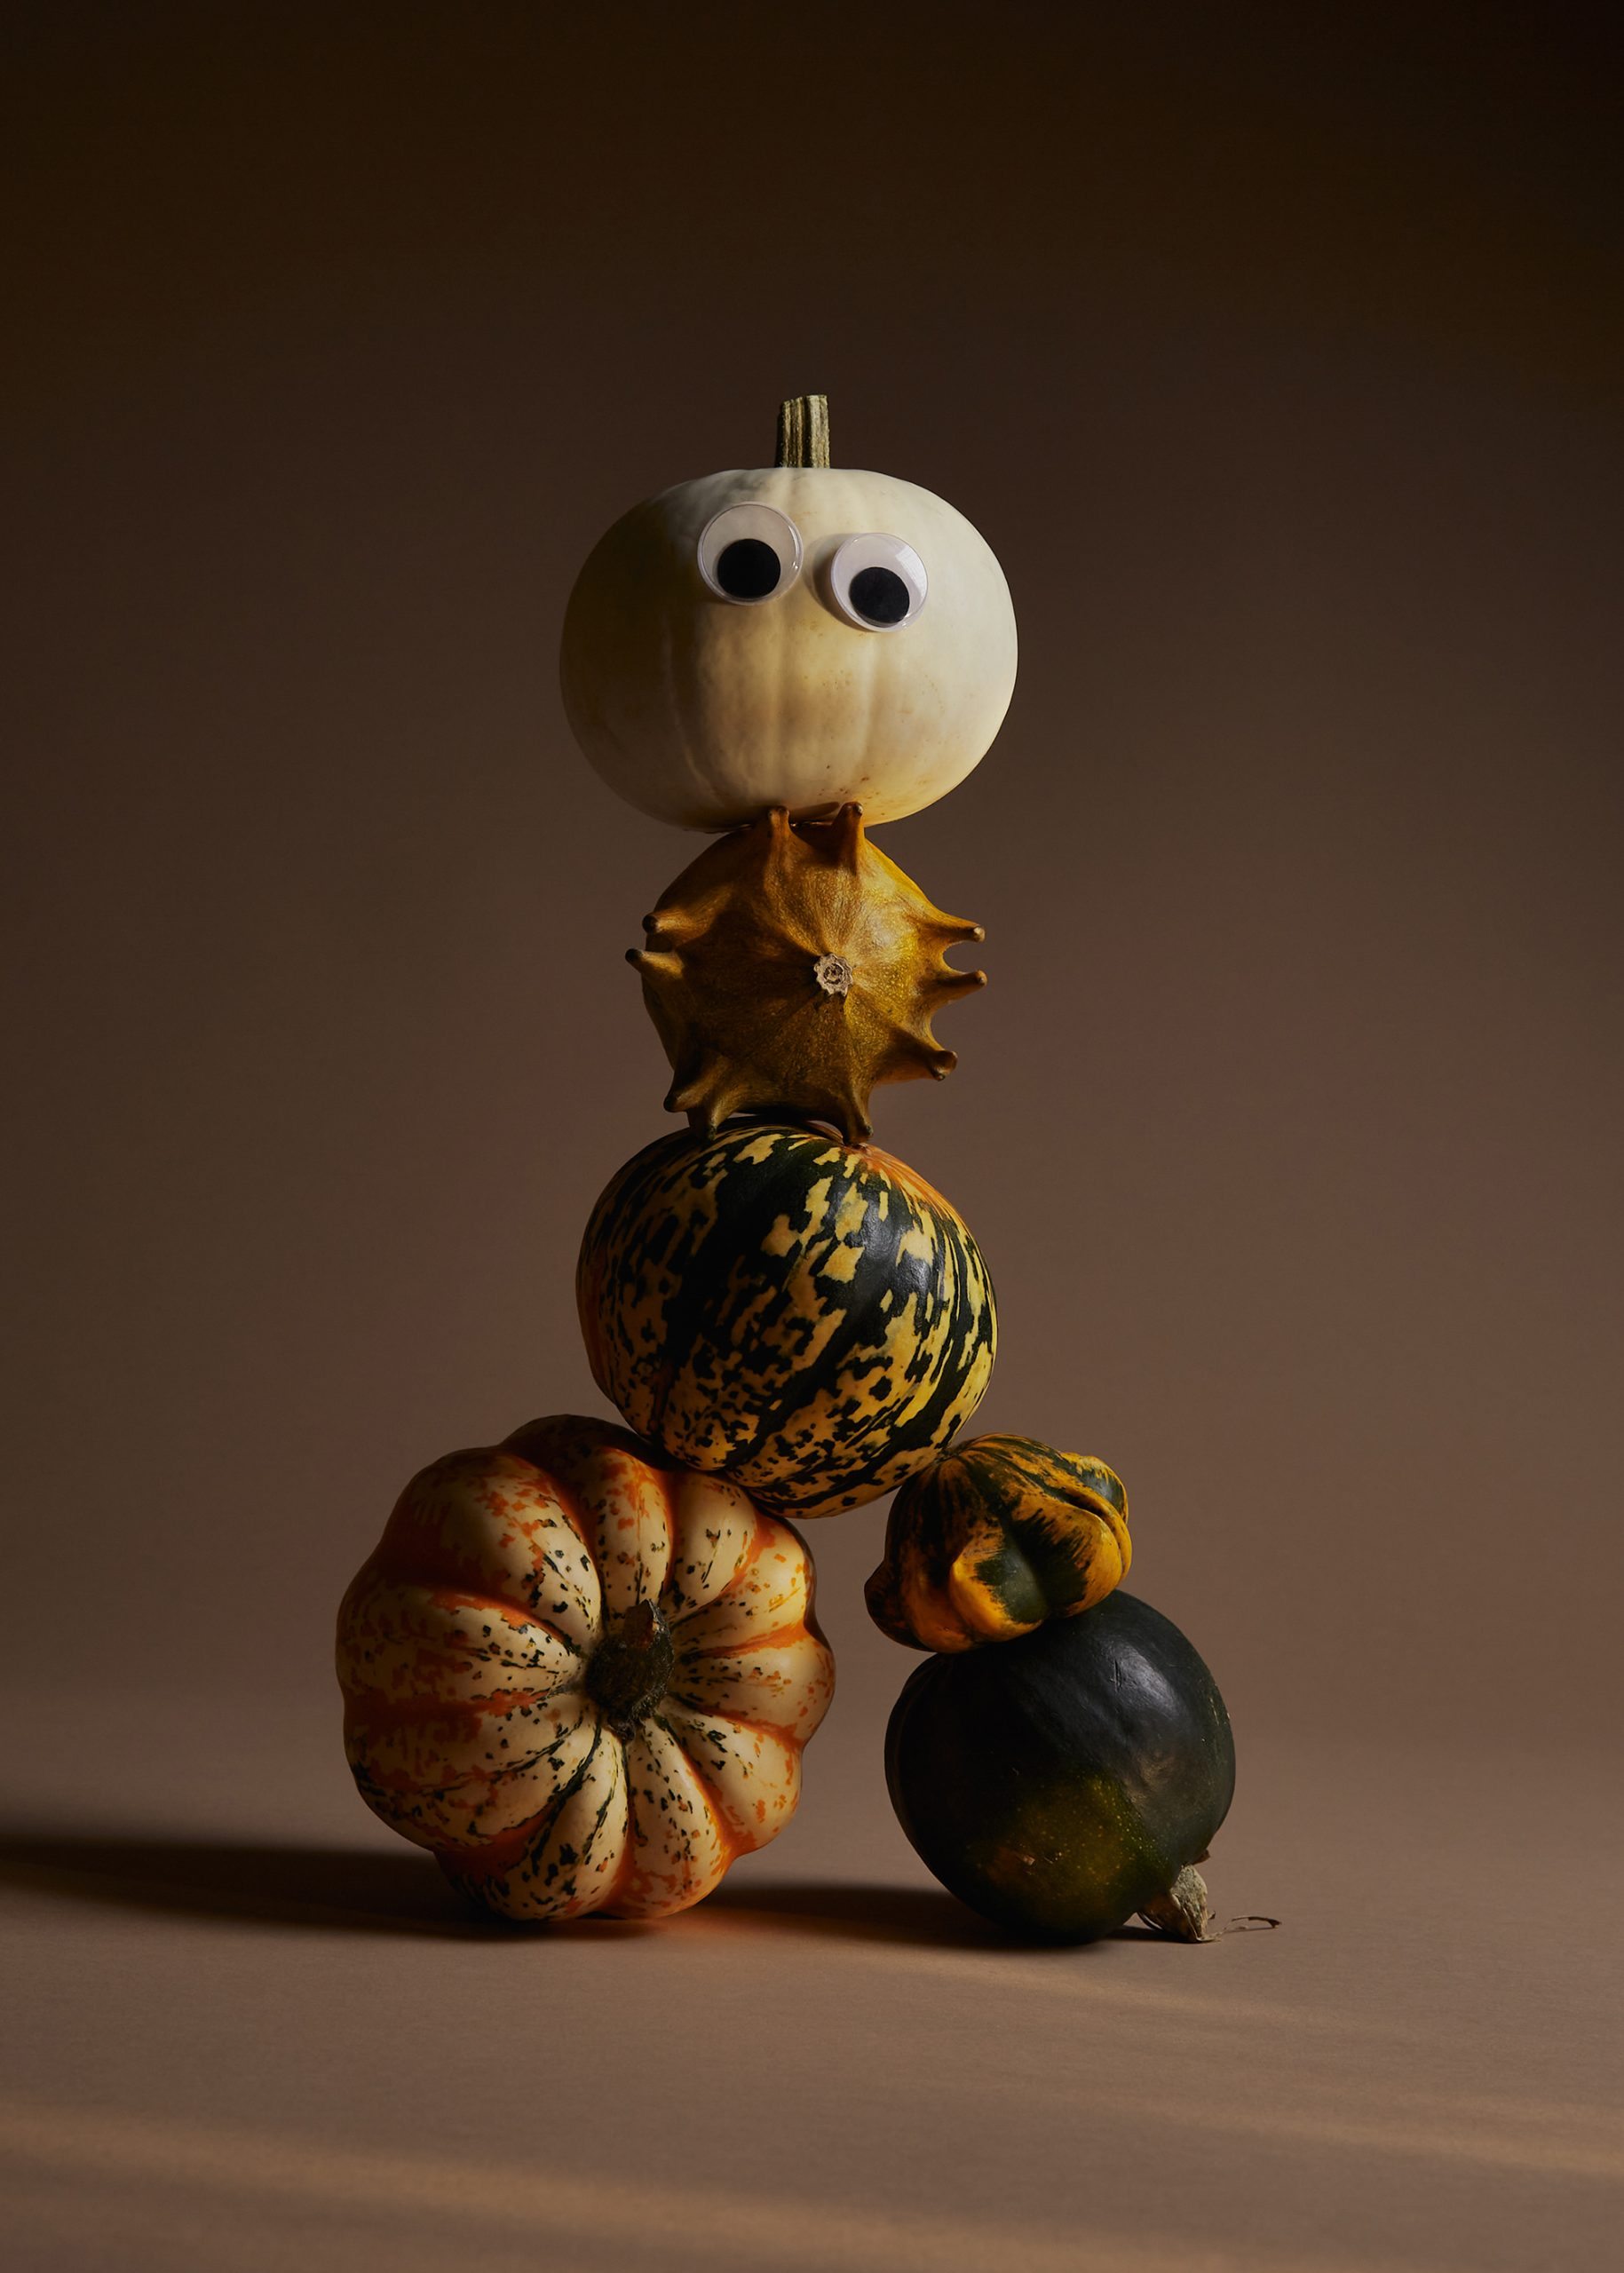 Rikki_Ward_Photographer_GOURDS_7